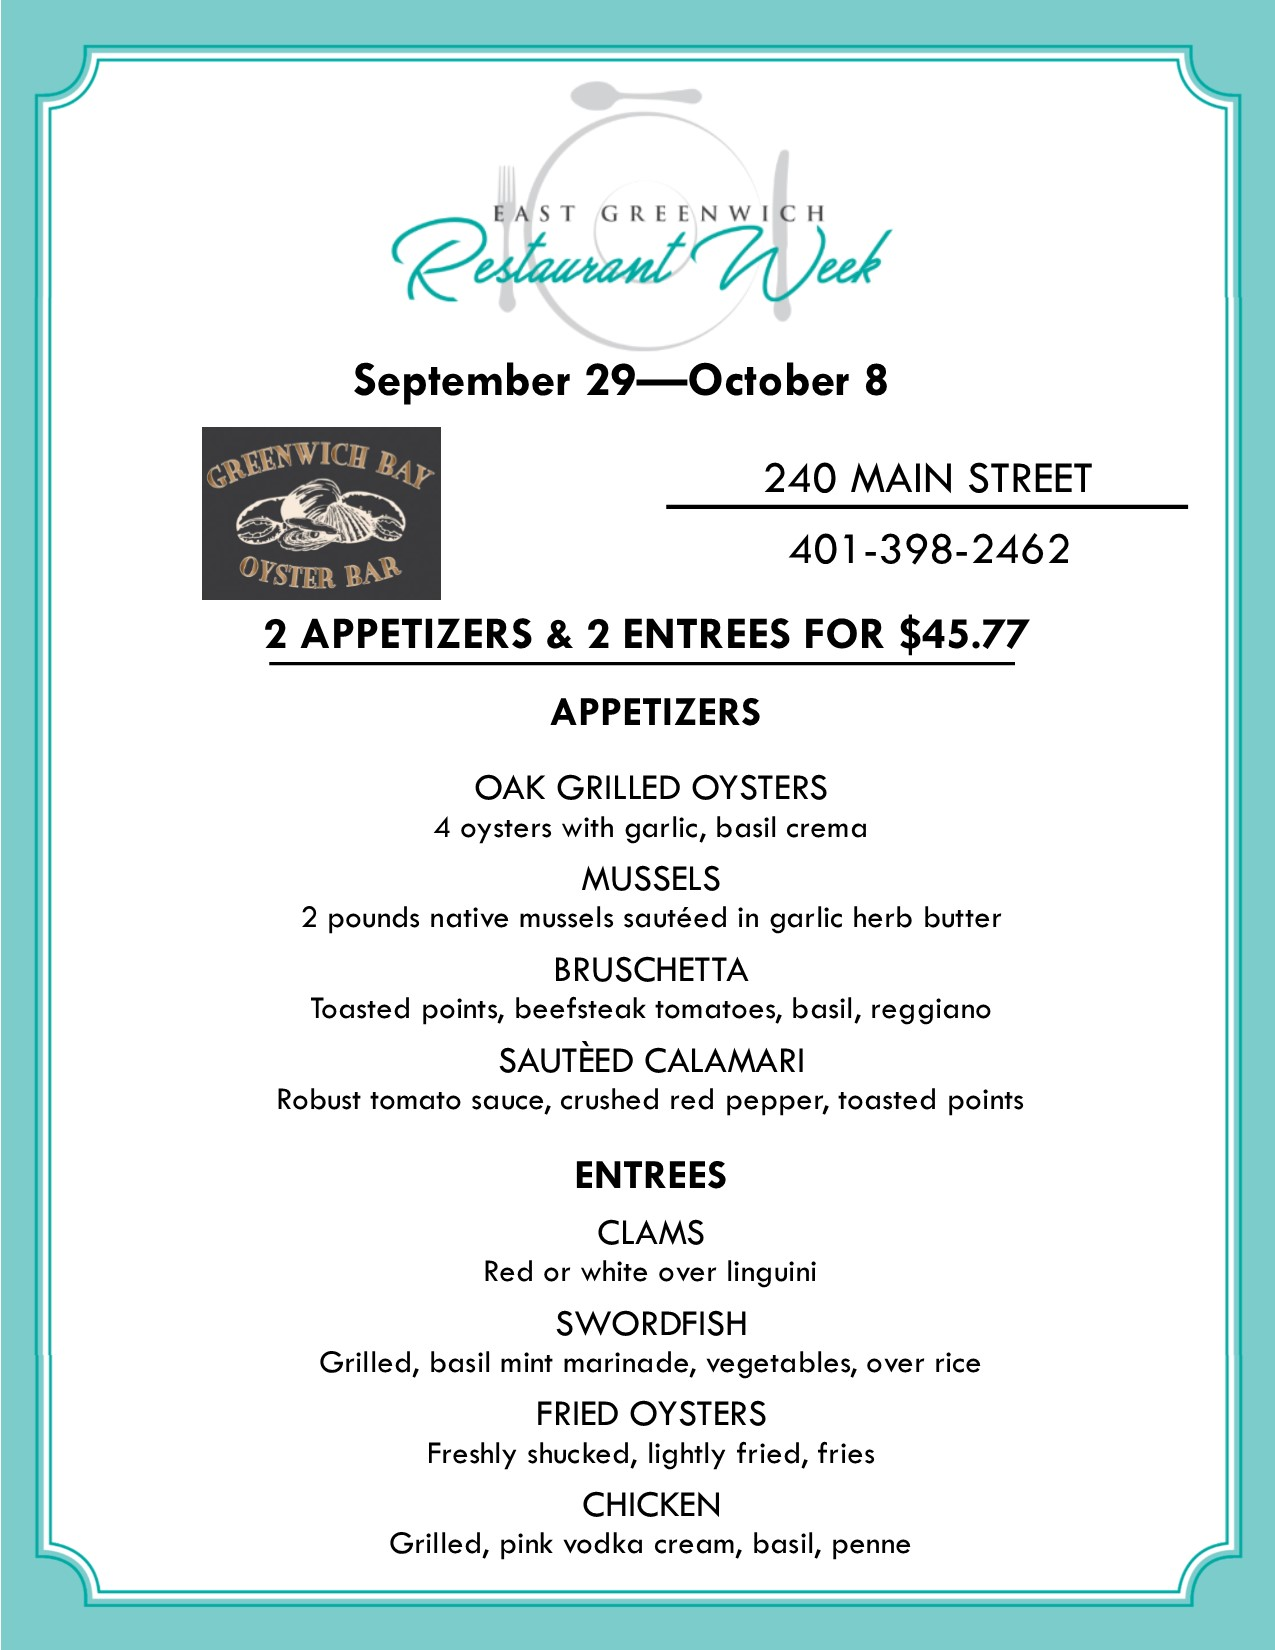 east greenwich restaurant week